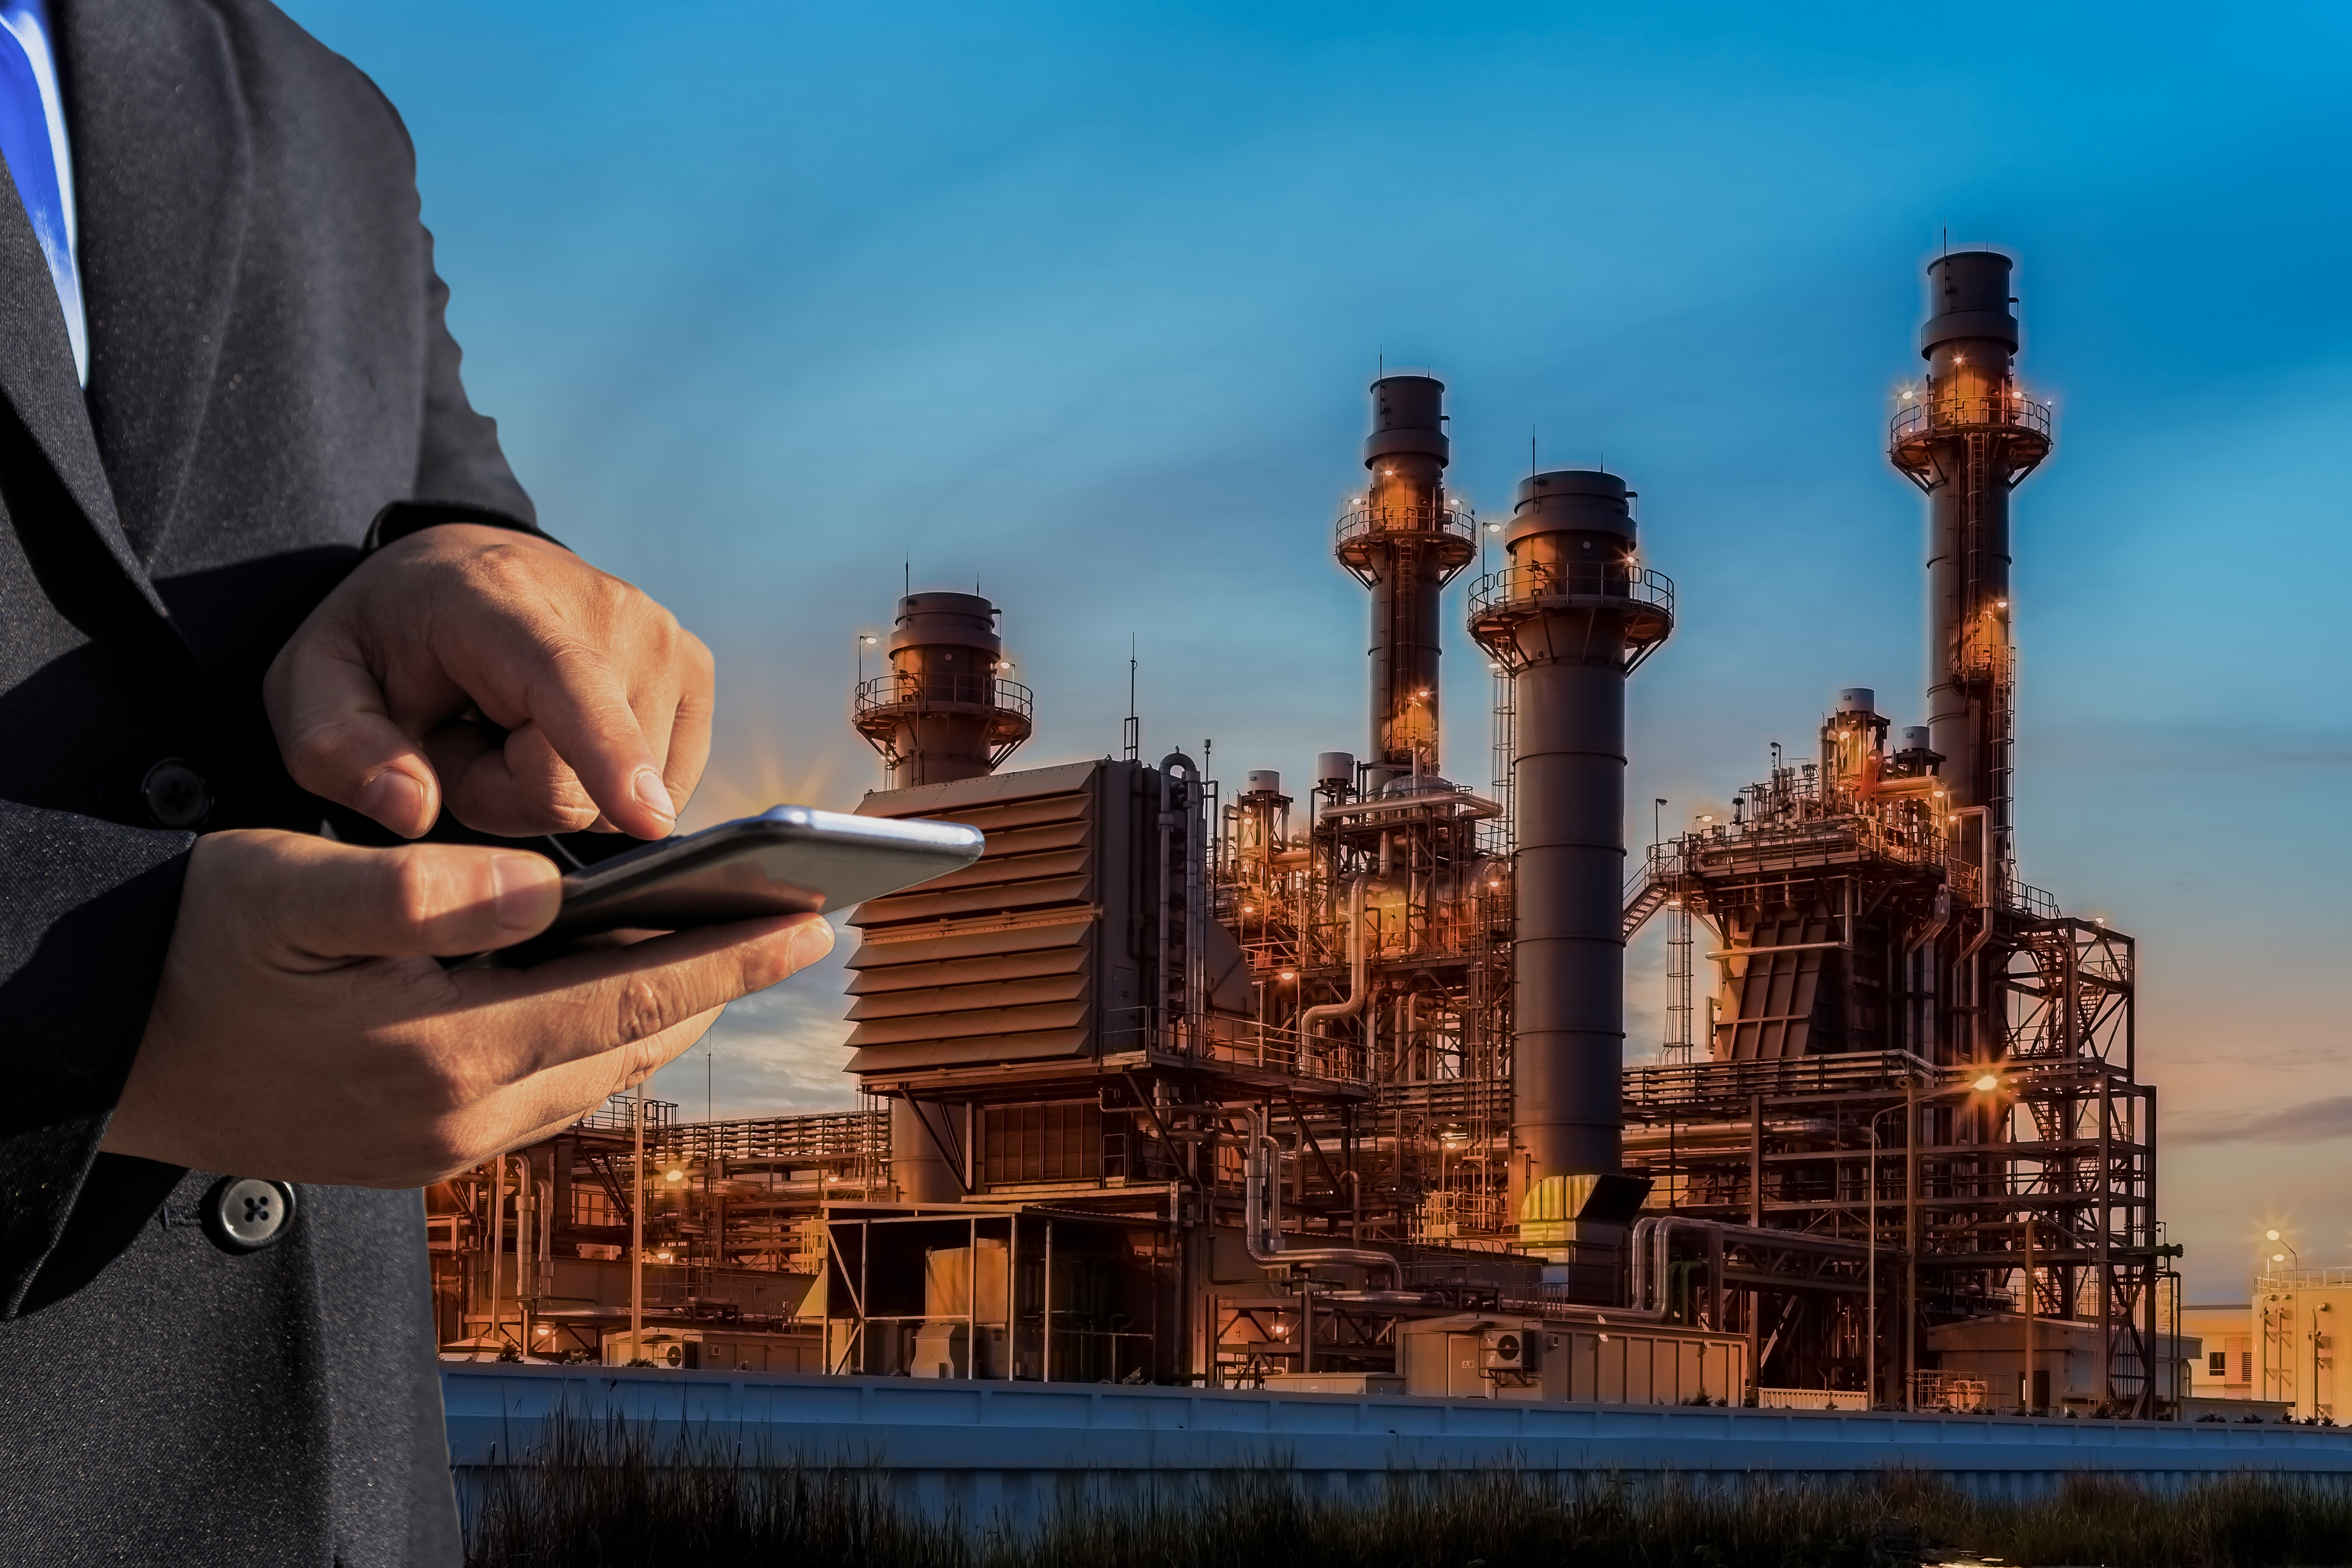 The oil and gas industry CIOs must embrance digital transformation to better address the boom and bust cycles in the industry.